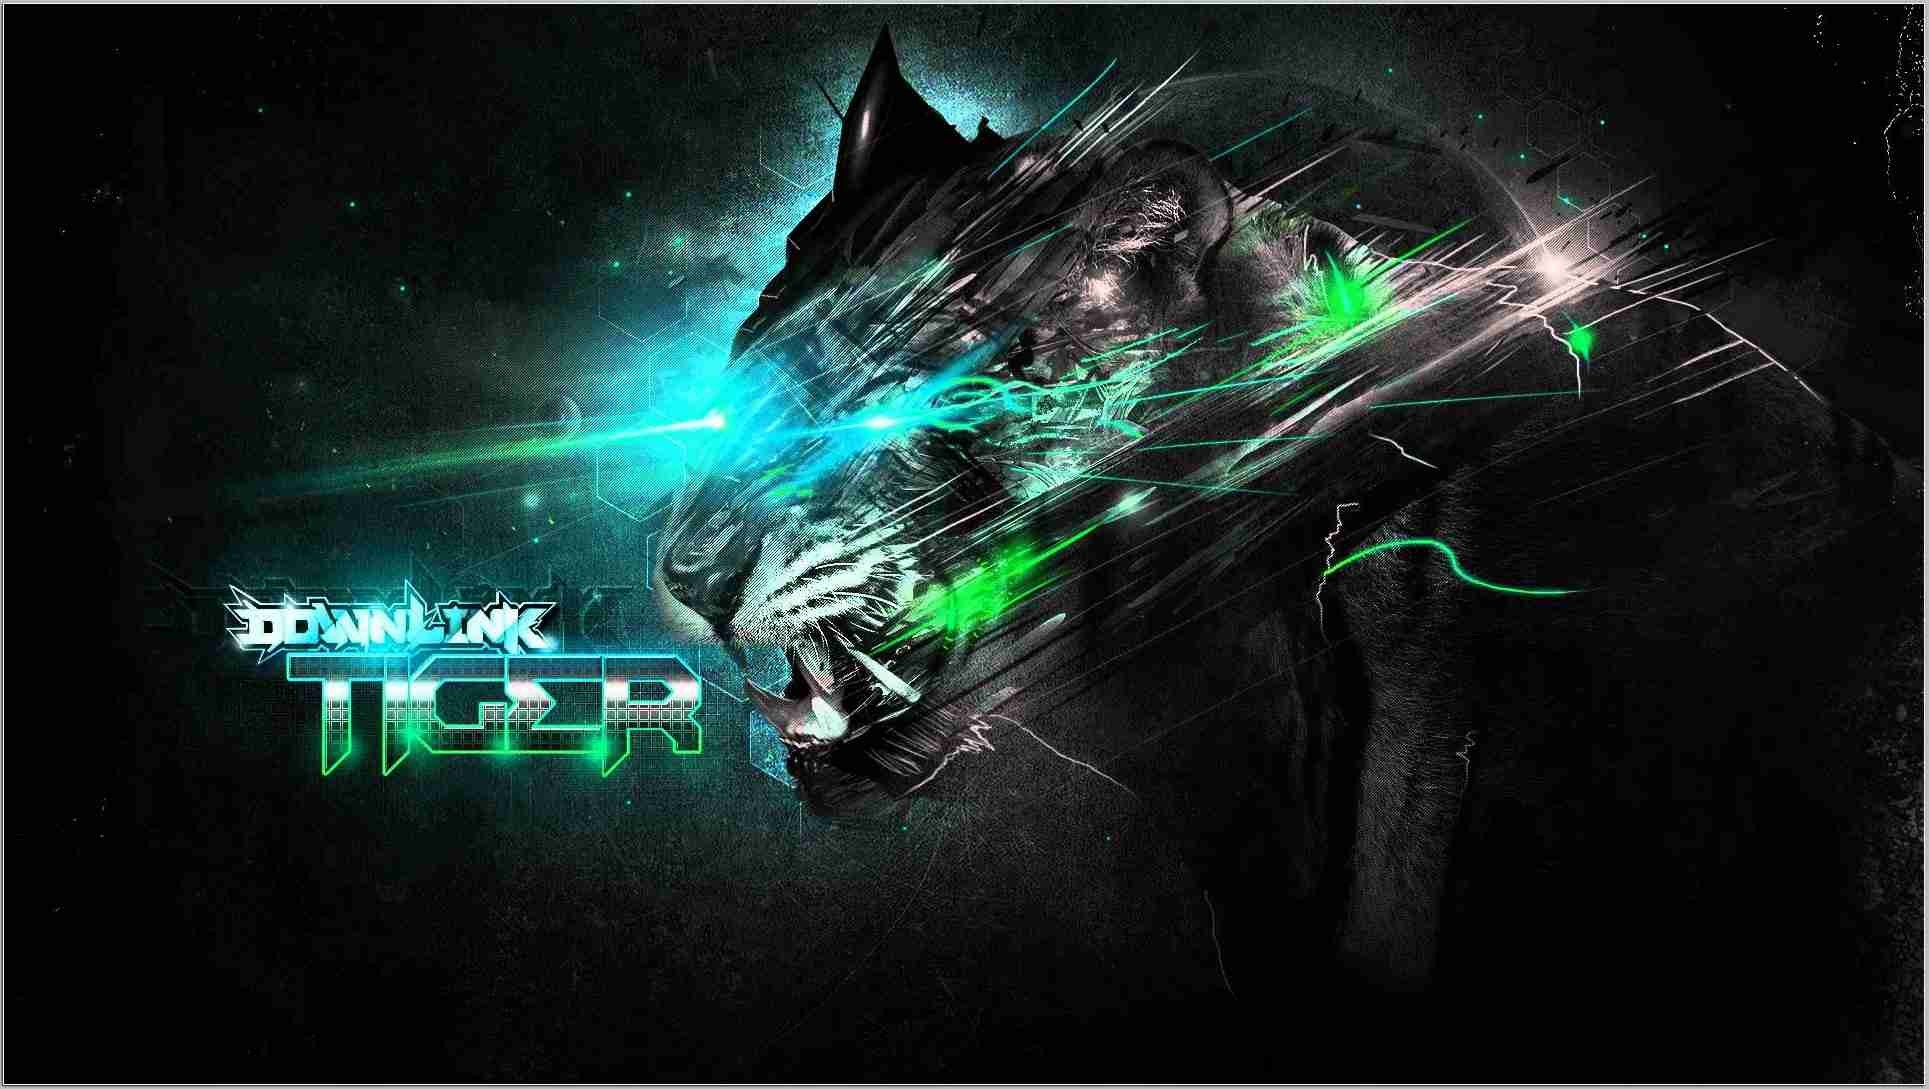 1929x1089, This Is Our Best Collection Of Excision - Pc Game - HD Wallpaper